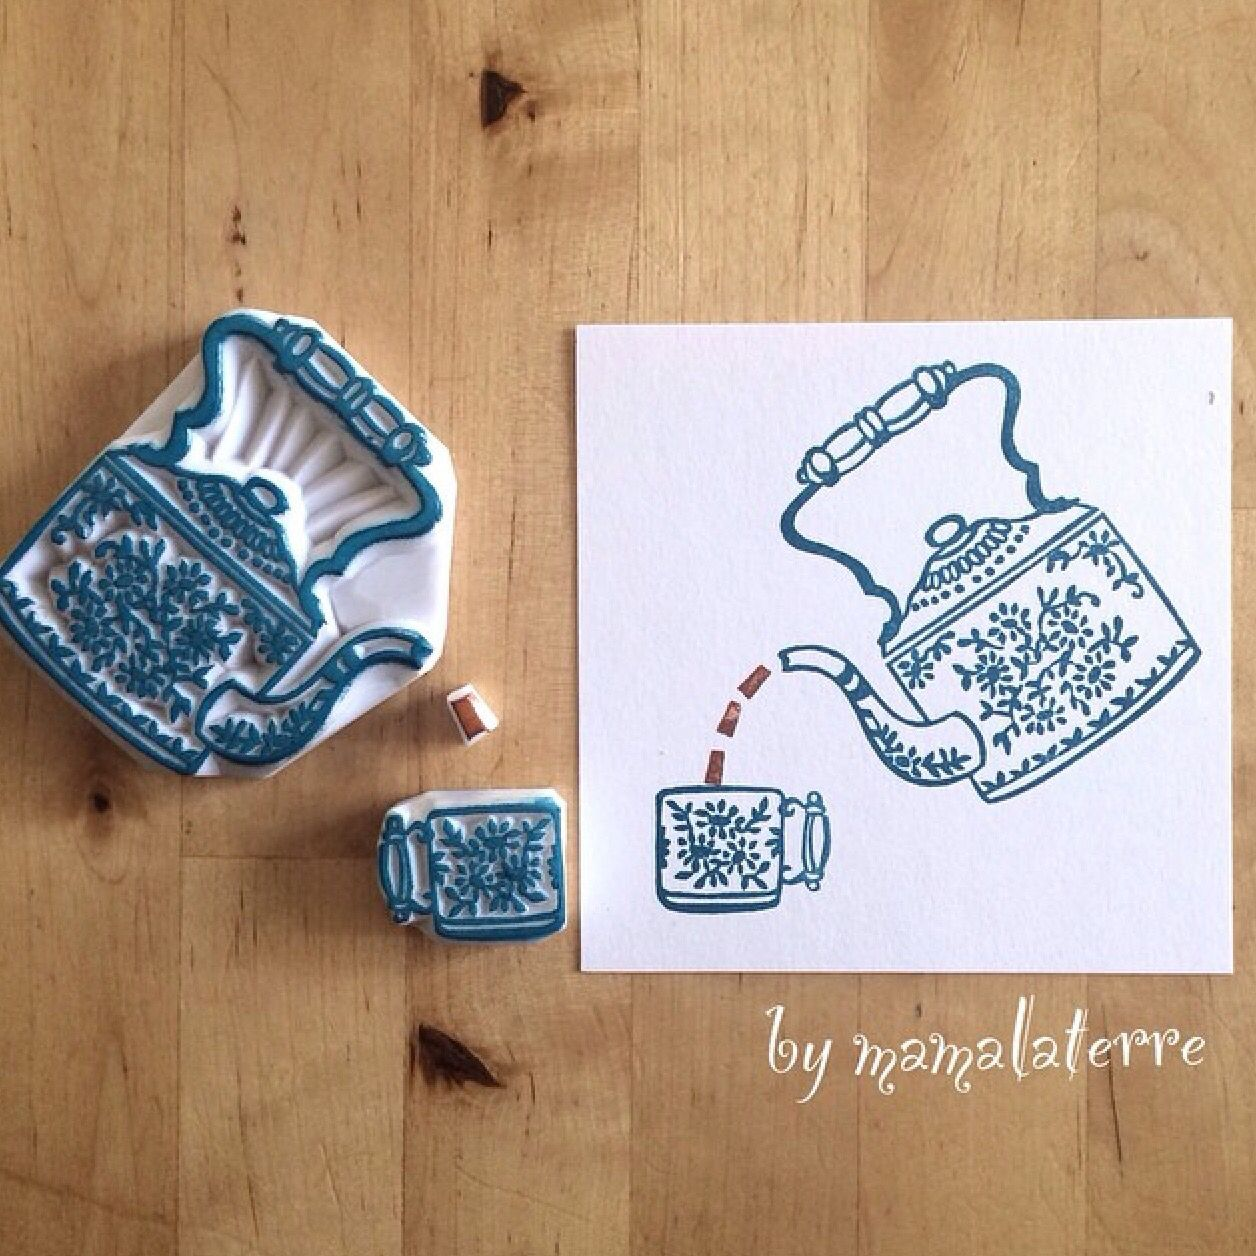 Rubberstamp via : instagram @mamalaterre [for more rubber stamps